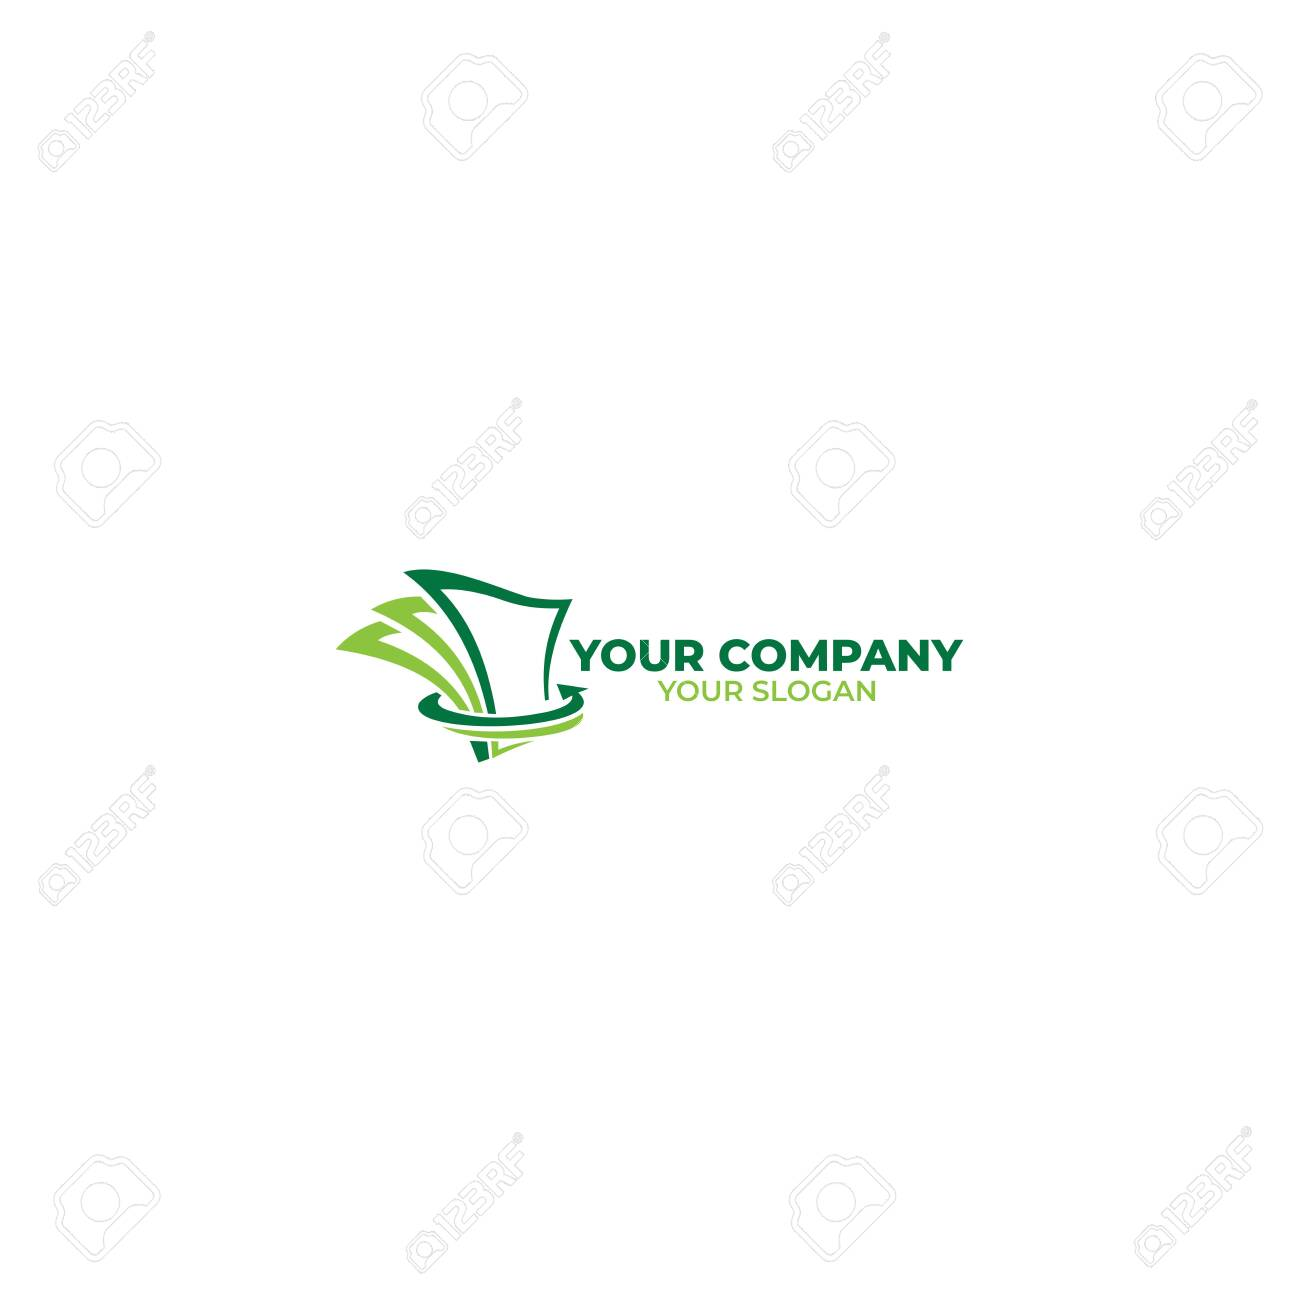 Loan Money Logo Design Vector Royalty Free Cliparts Vectors And Stock Illustration Image 128801653